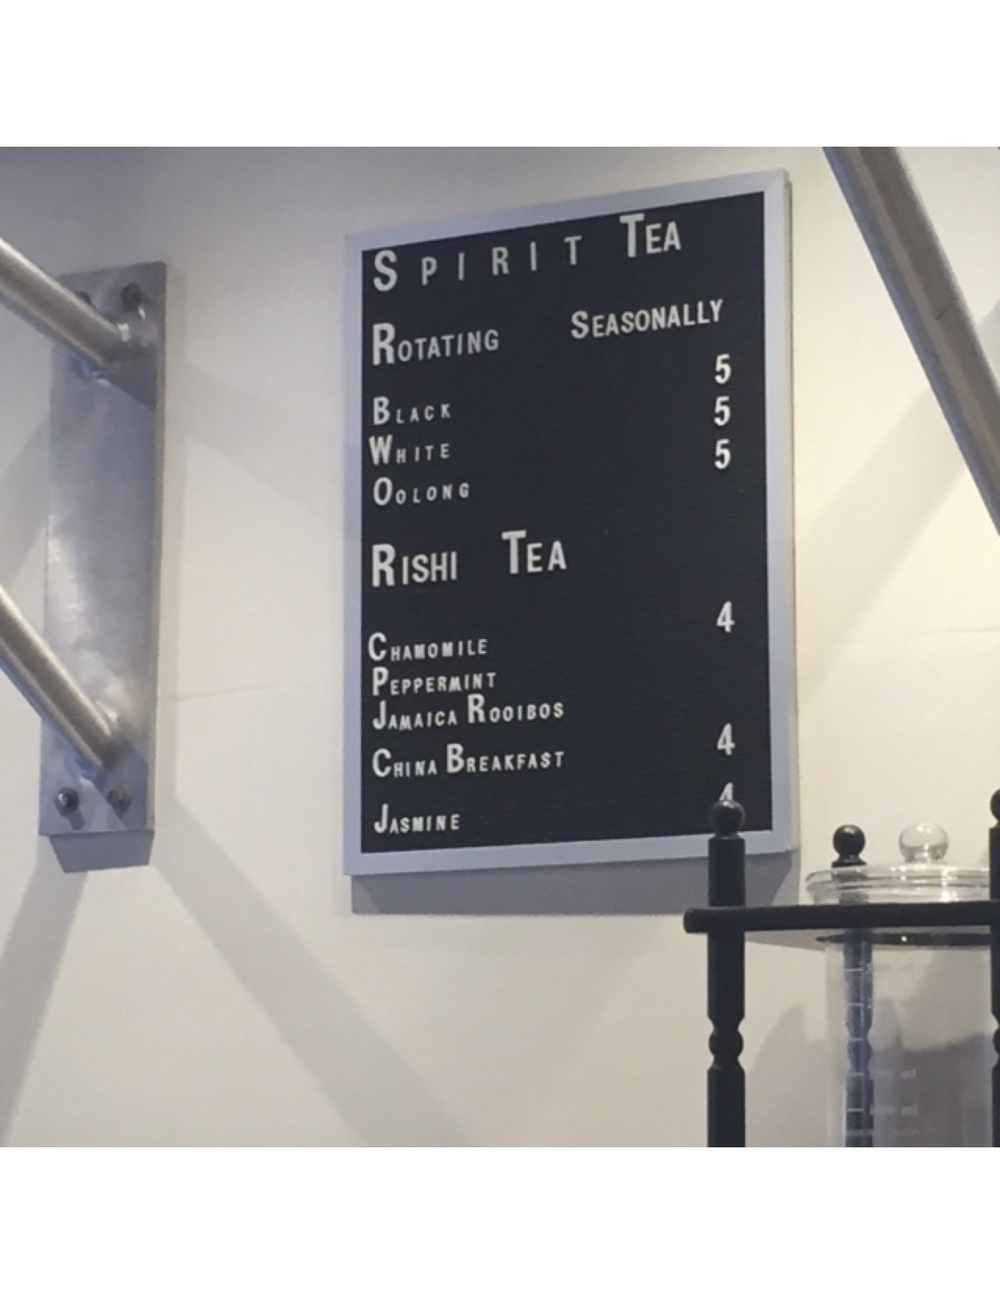 This Tea menu stays much more ambiguous and allows for you to rotate your teas seasonally